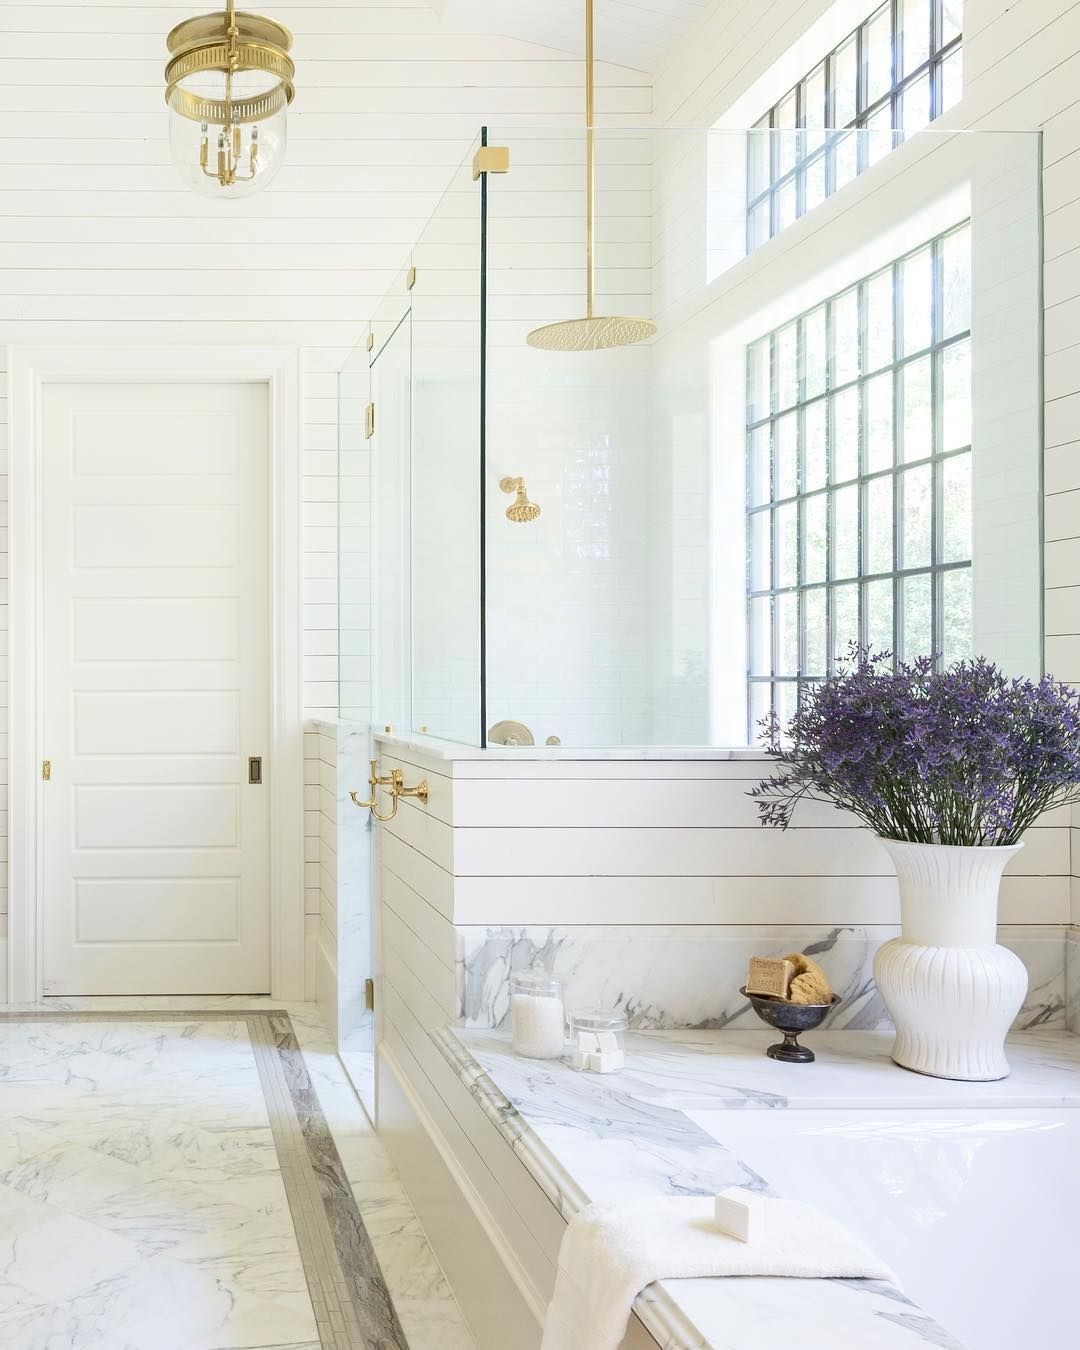 Bathroom reno on the brain? @PureWow does it again with 8 dreamy ...